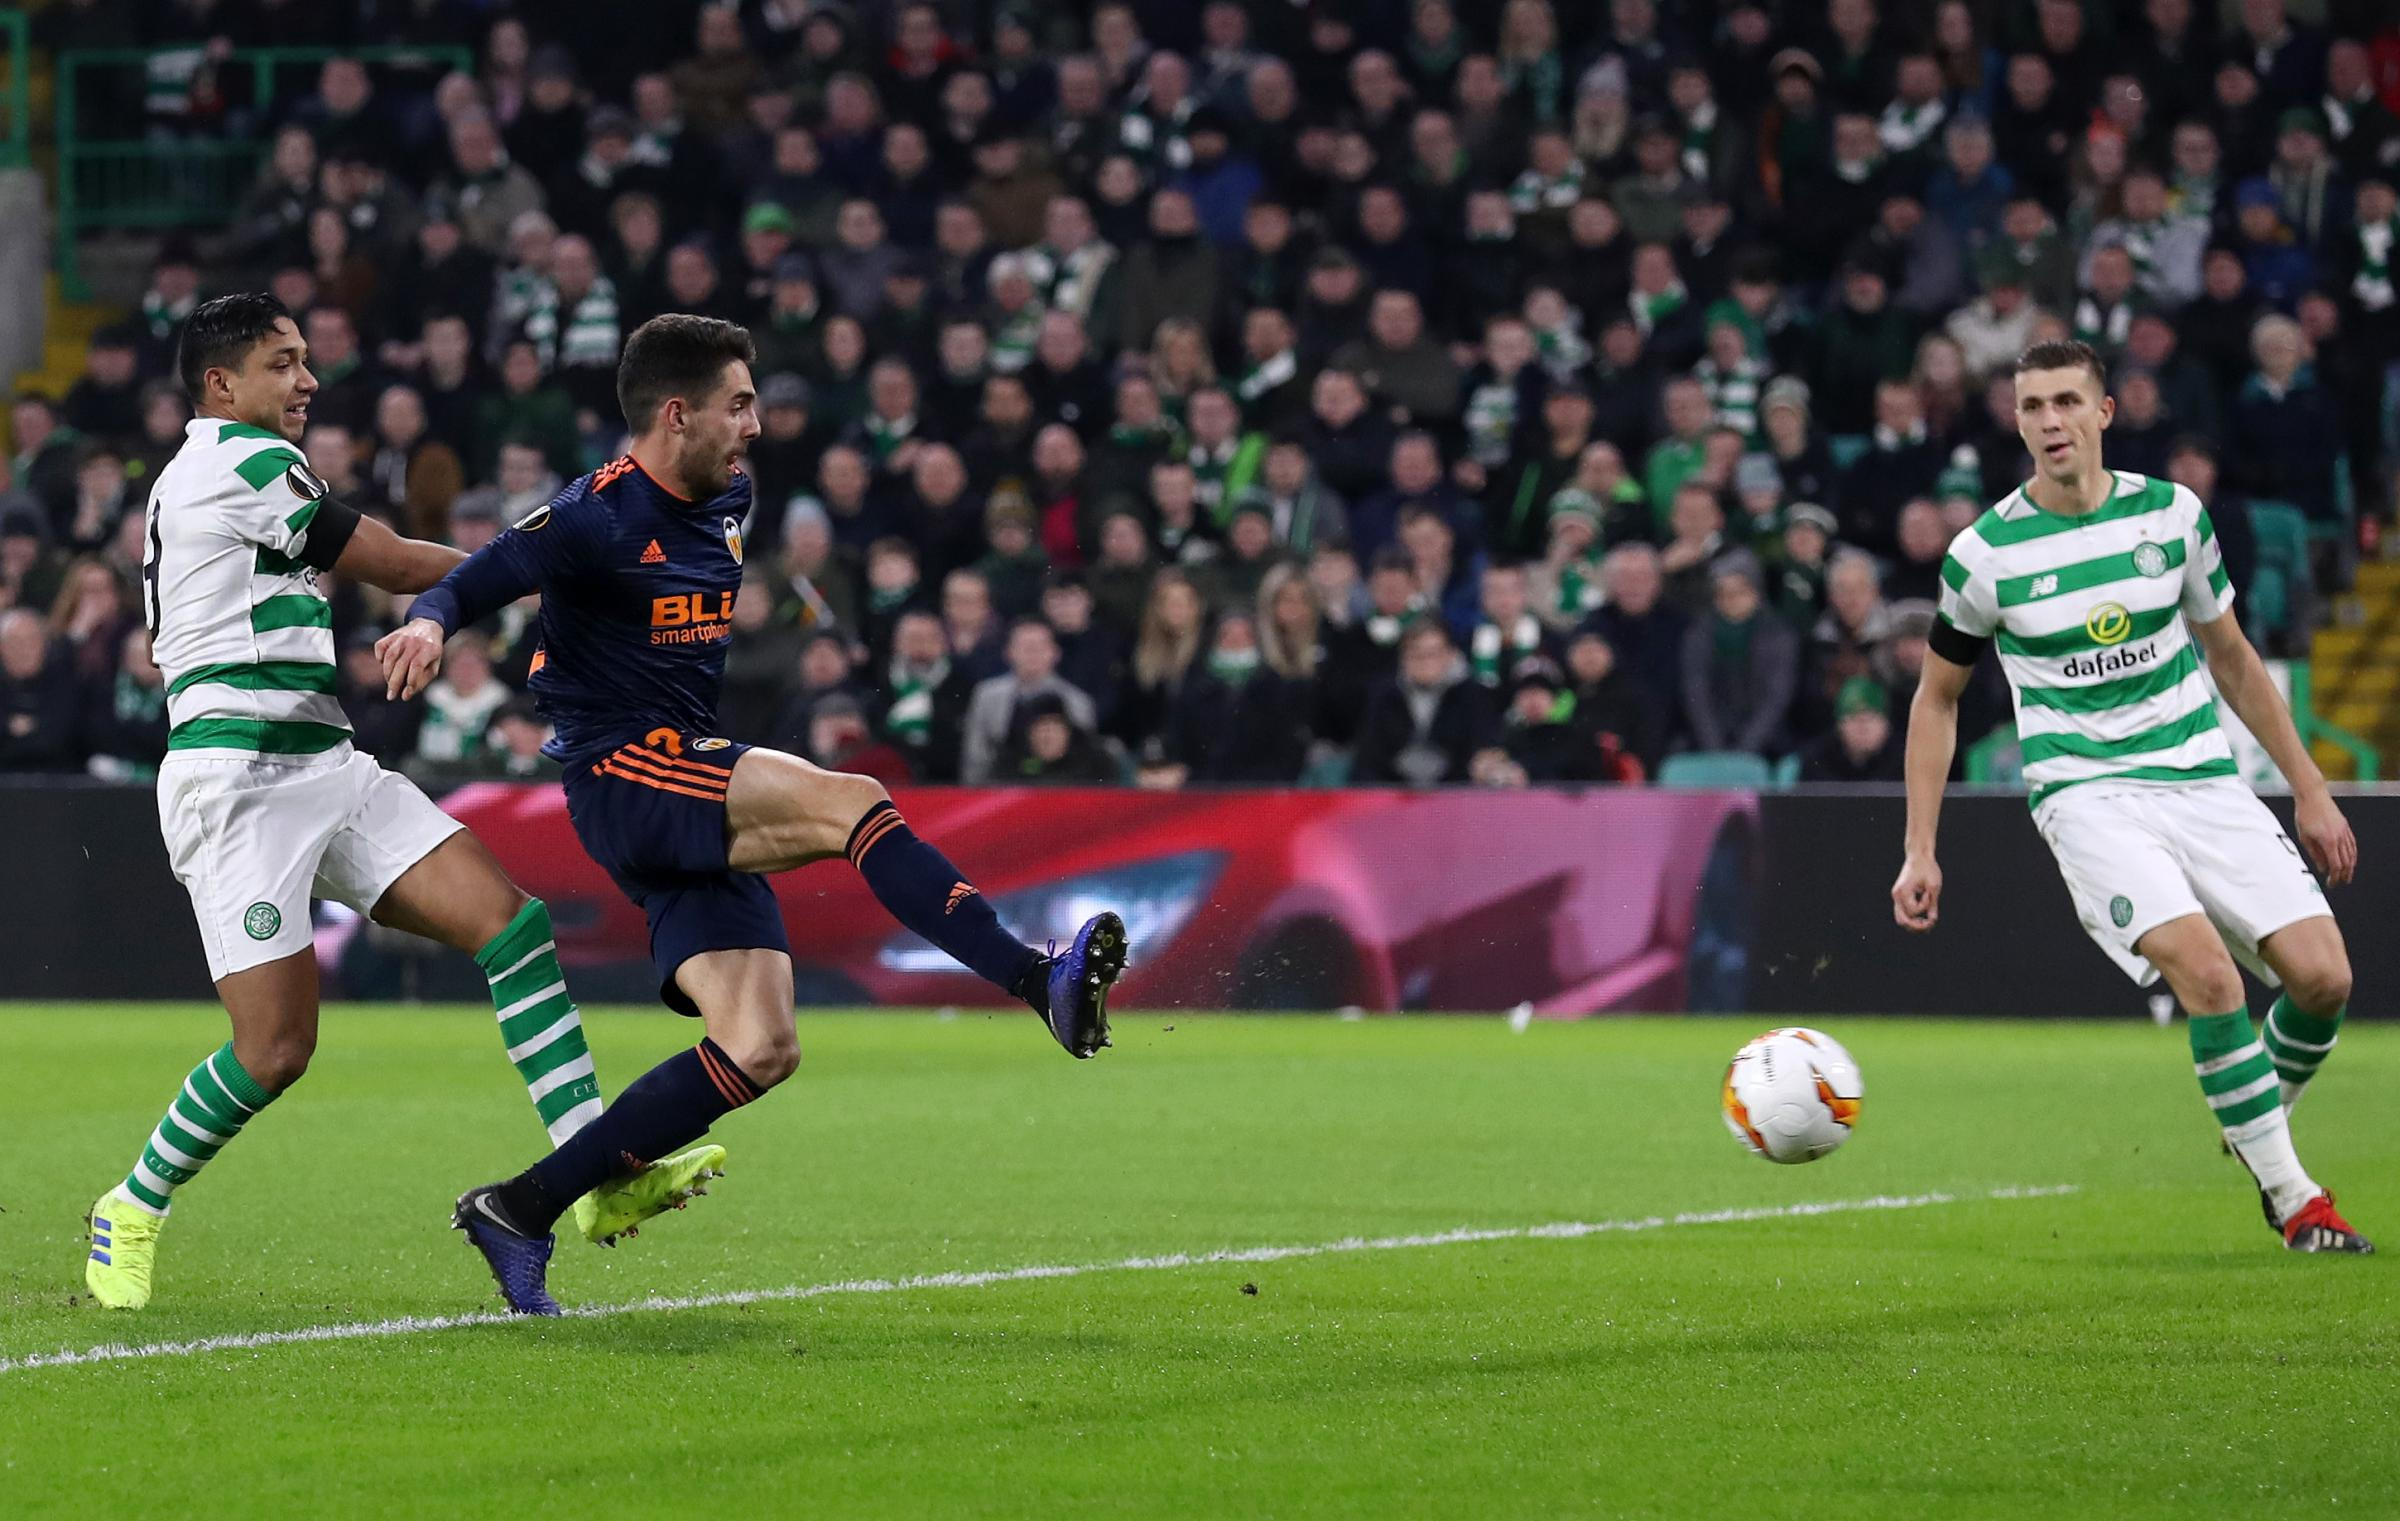 GLASGOW, SCOTLAND - FEBRUARY 14:  Ruben Sobrino of Valencia scores his sides second goal during the UEFA Europa League Round of 32 First Leg match between Celtic and Valencia at Celtic Park on February 14, 2019 in Glasgow, Scotland, United Kingdom.  (Phot